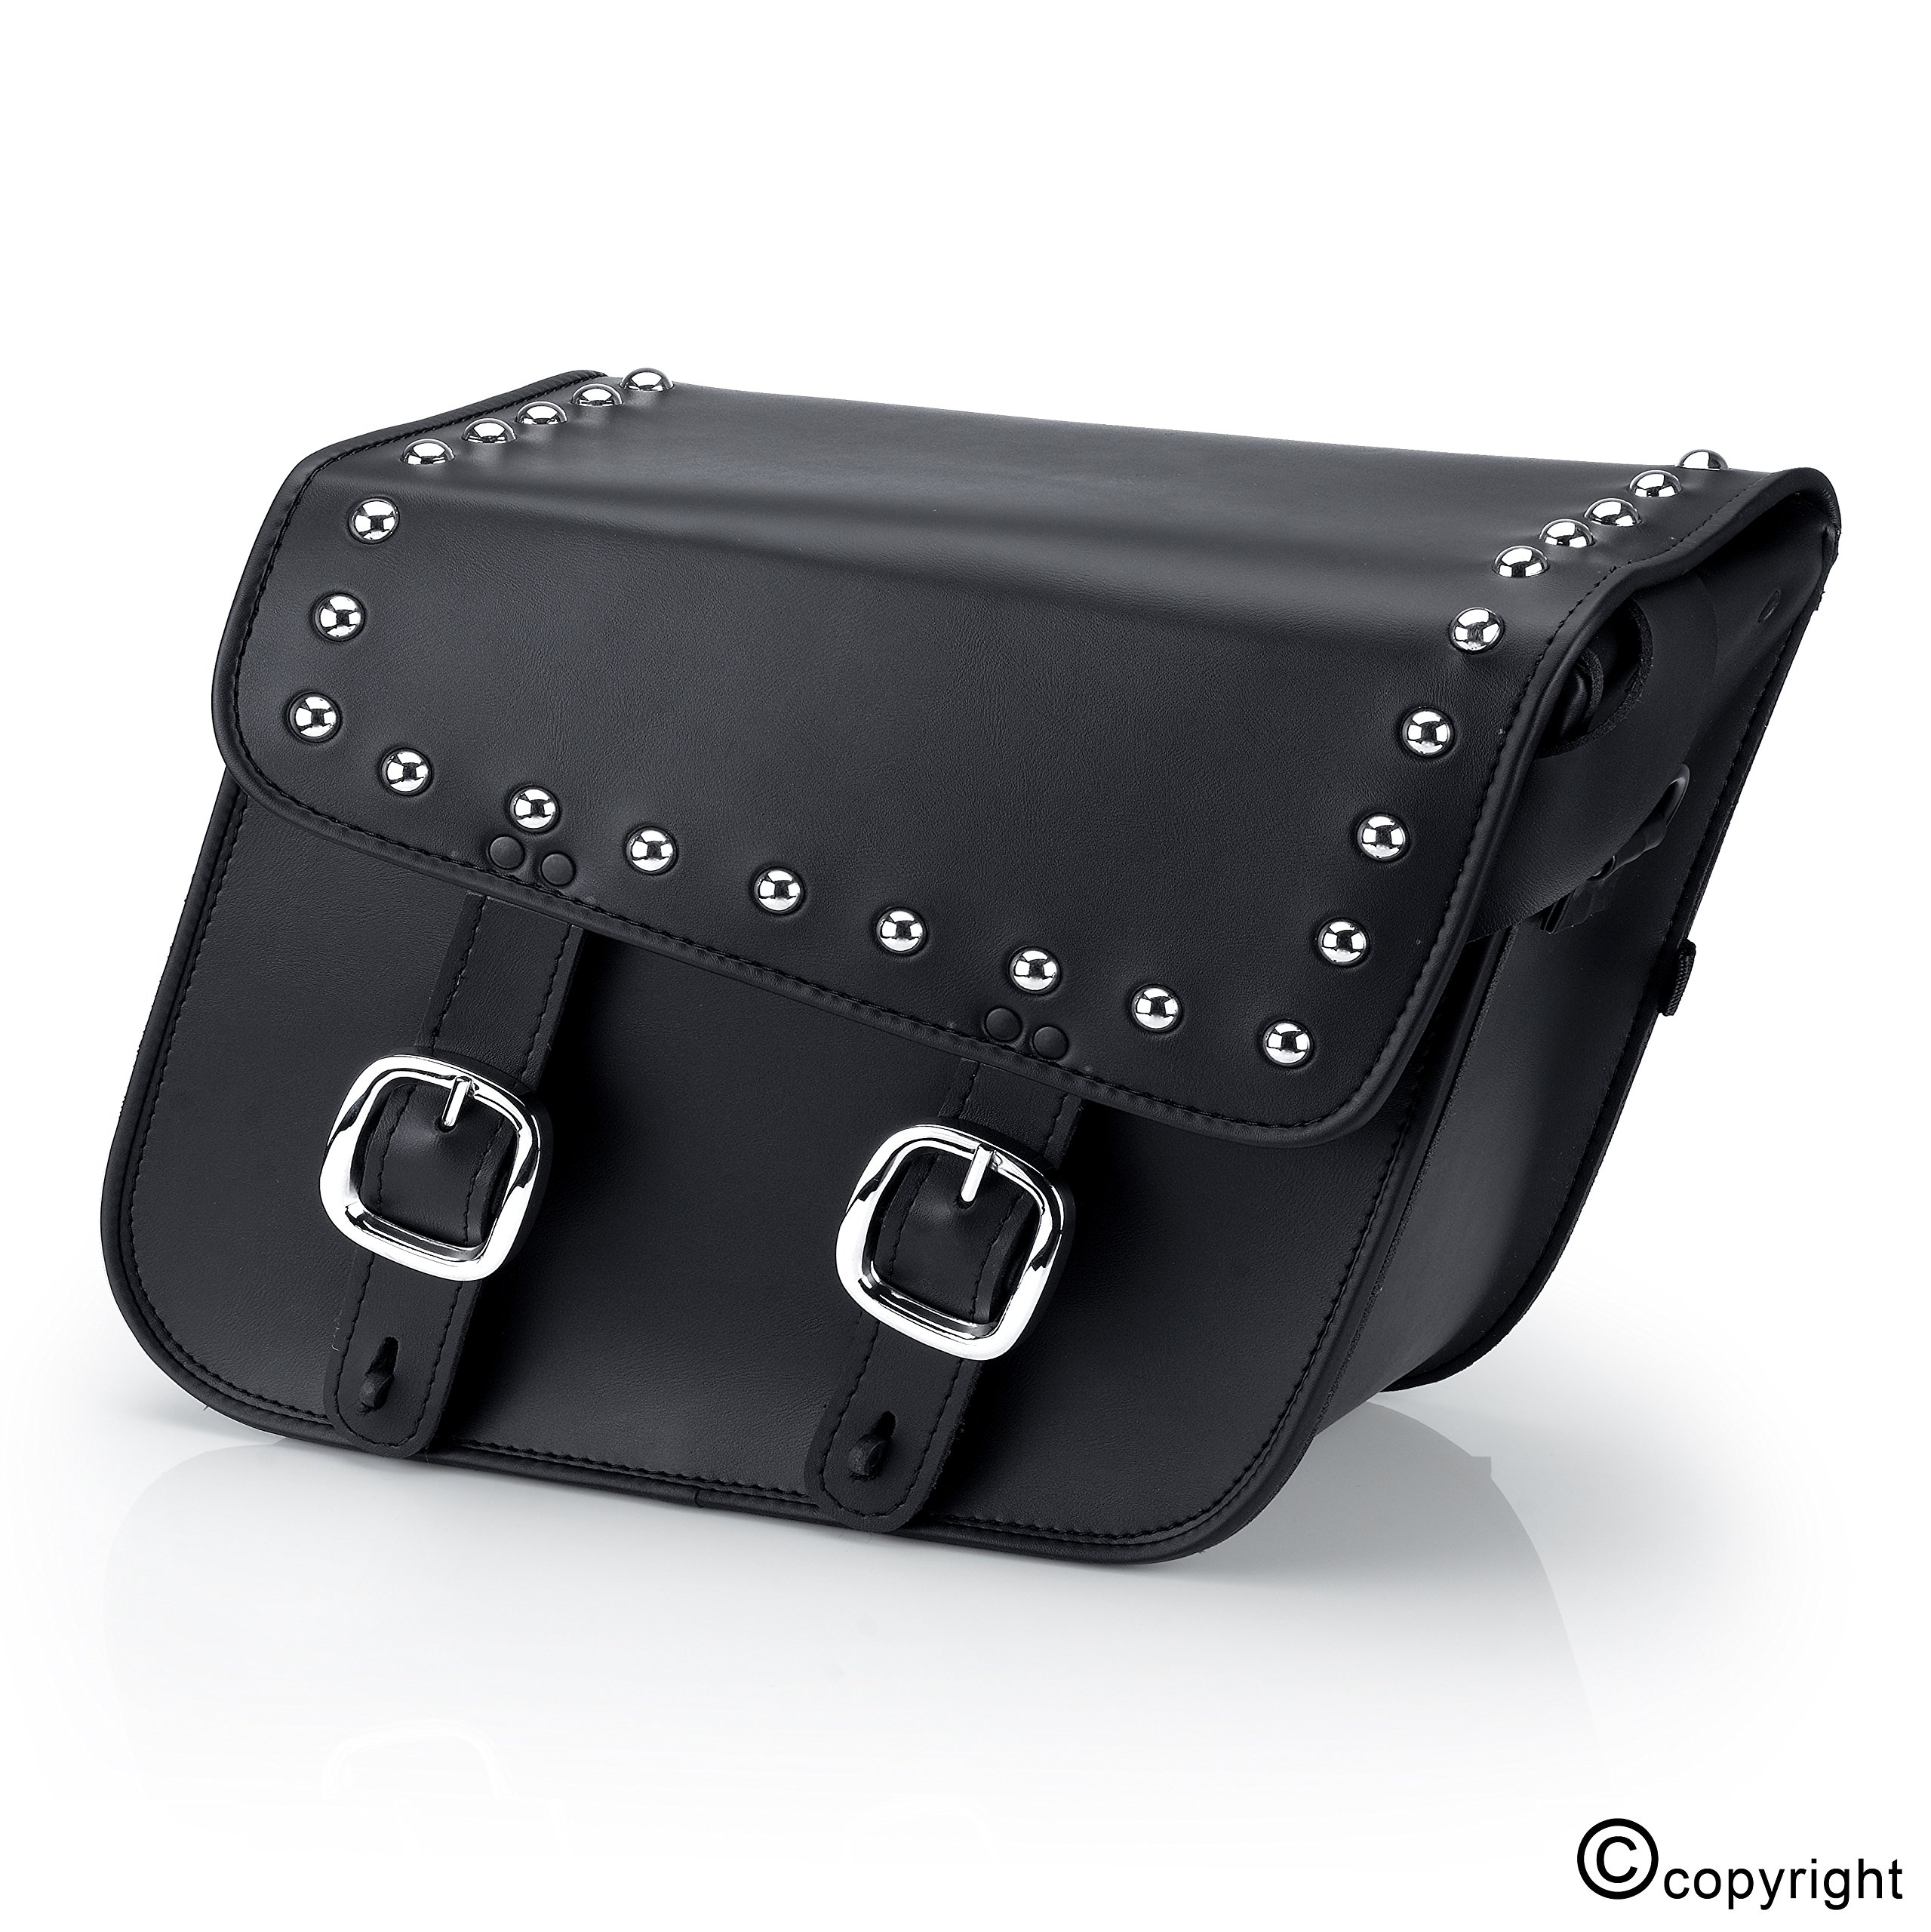 Nomad USA Leather Studded Large Motorcycle Saddlebags w/ Quick Release Buckles